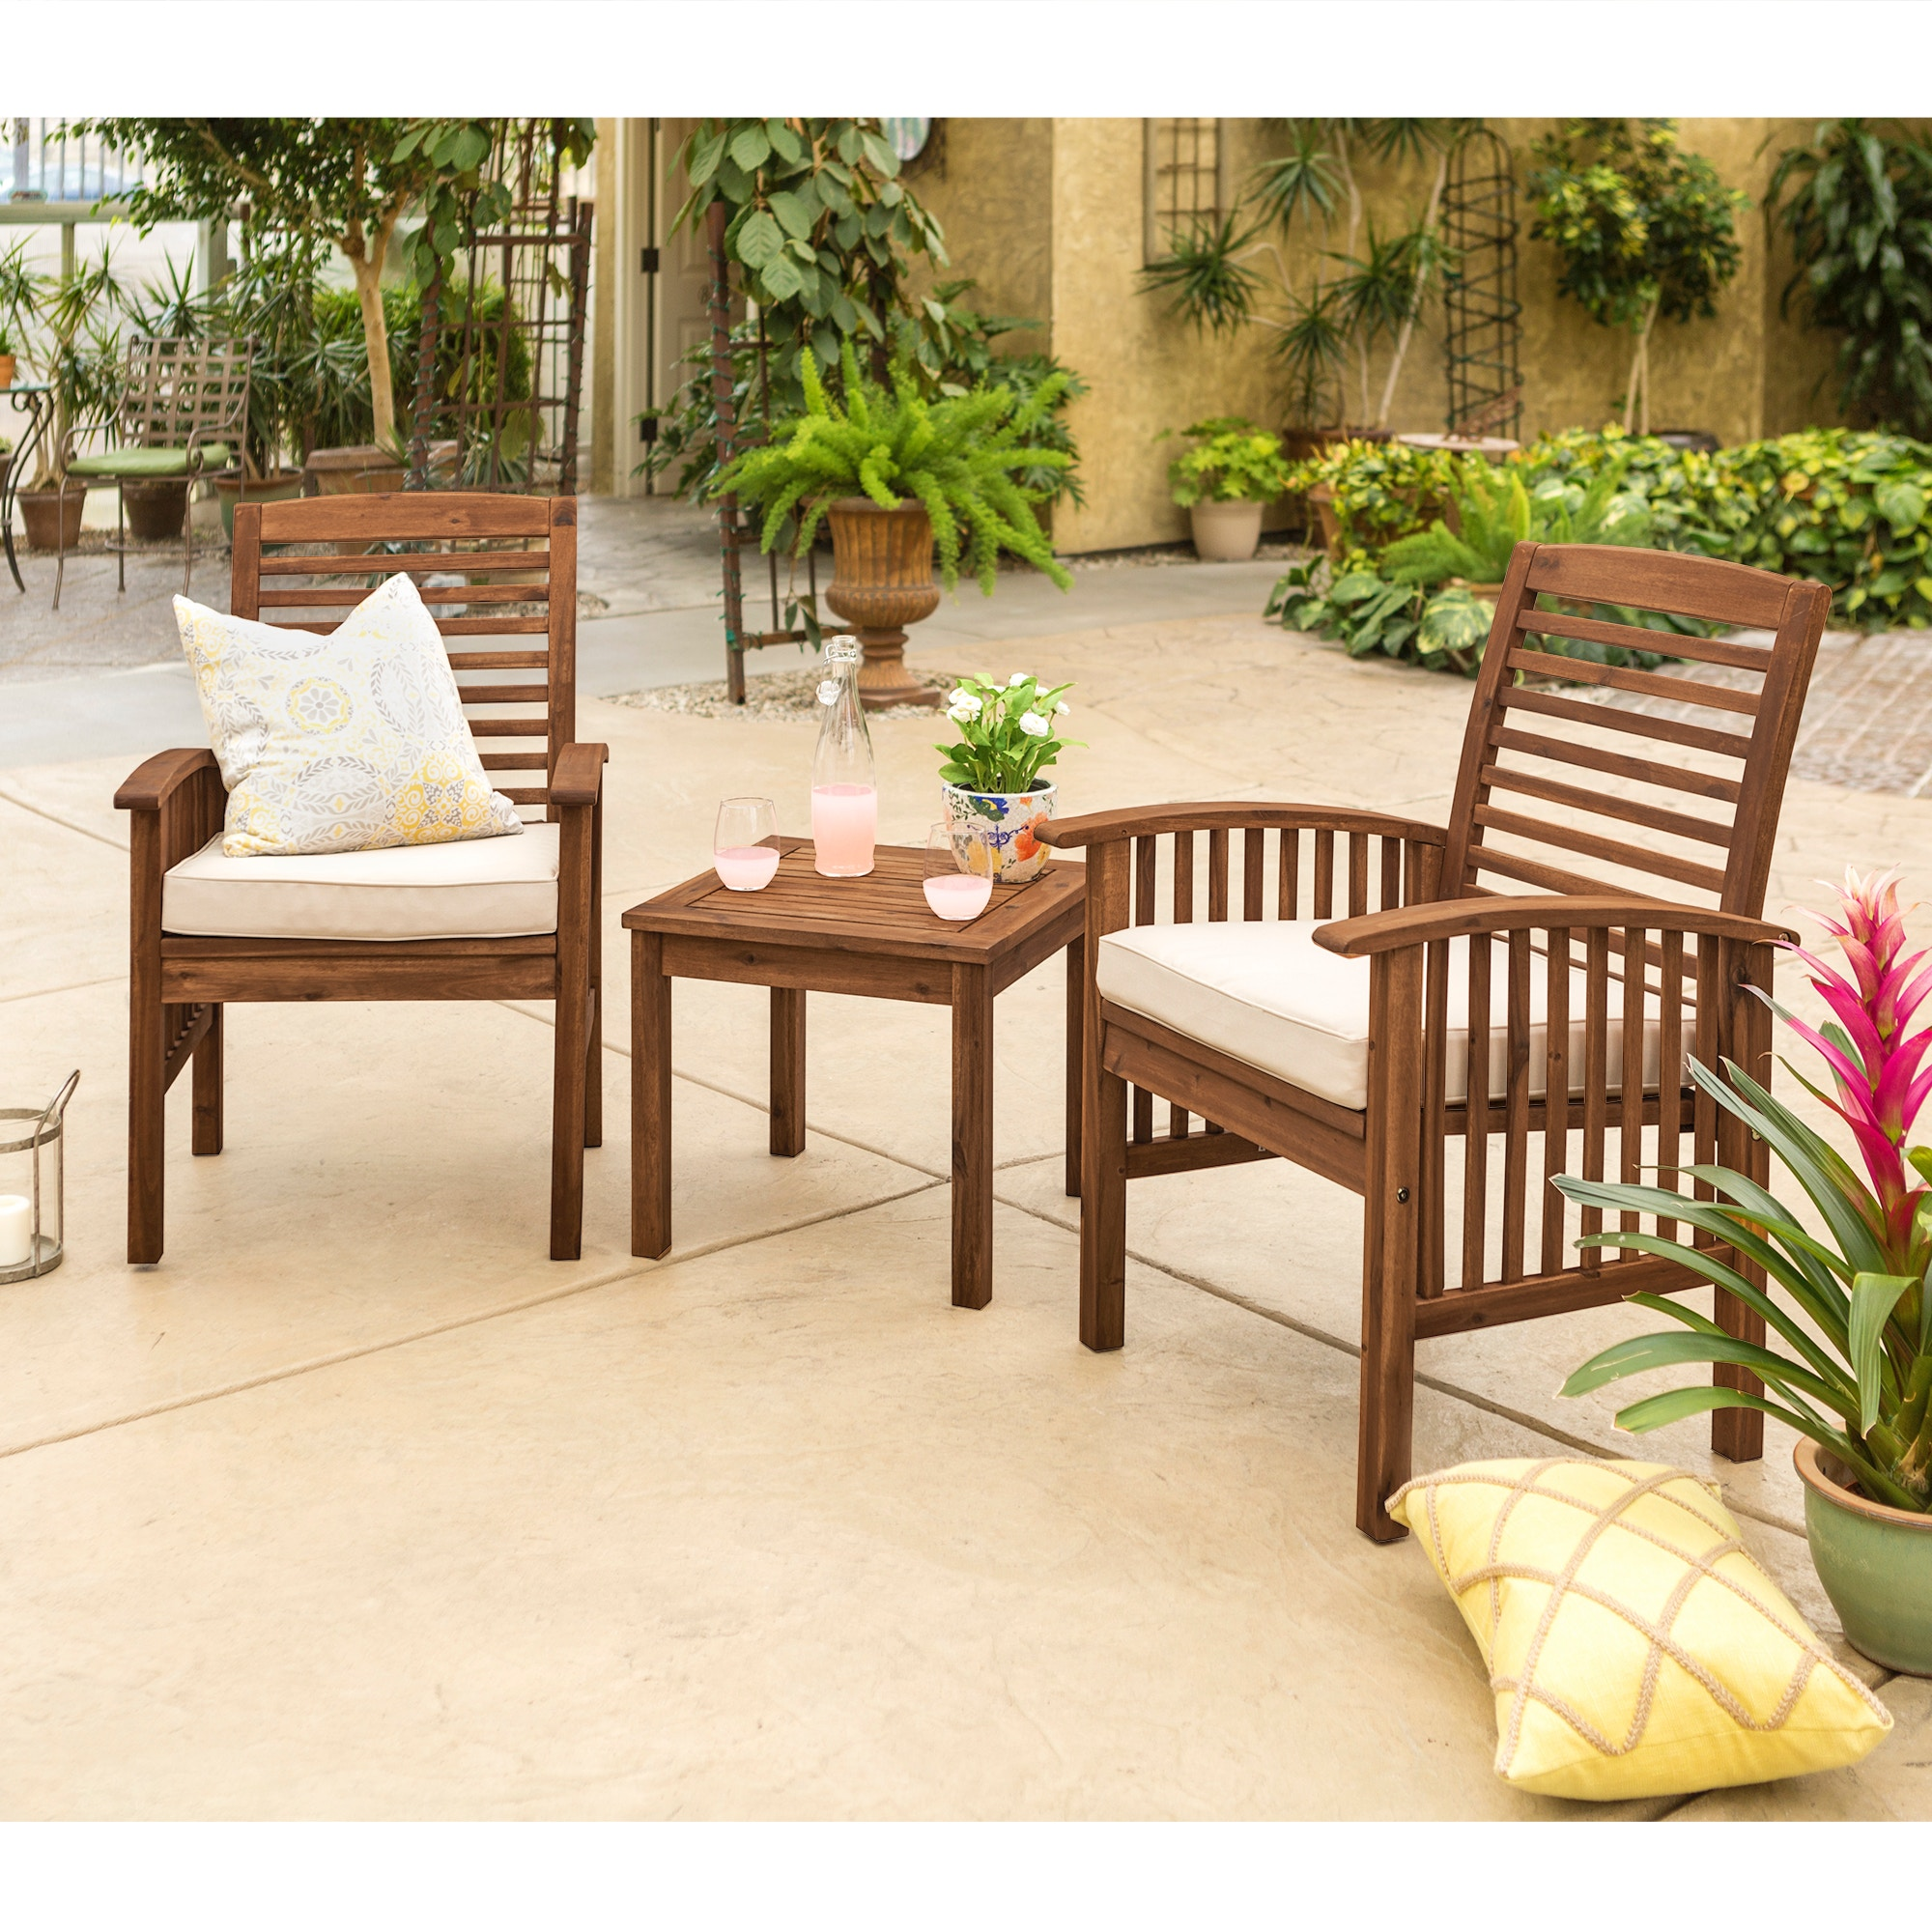 Ft Myers Outdoor Classic Acacia Wood Patio Chairs And Side Table  WEDOWC3CGDB From Walter E.